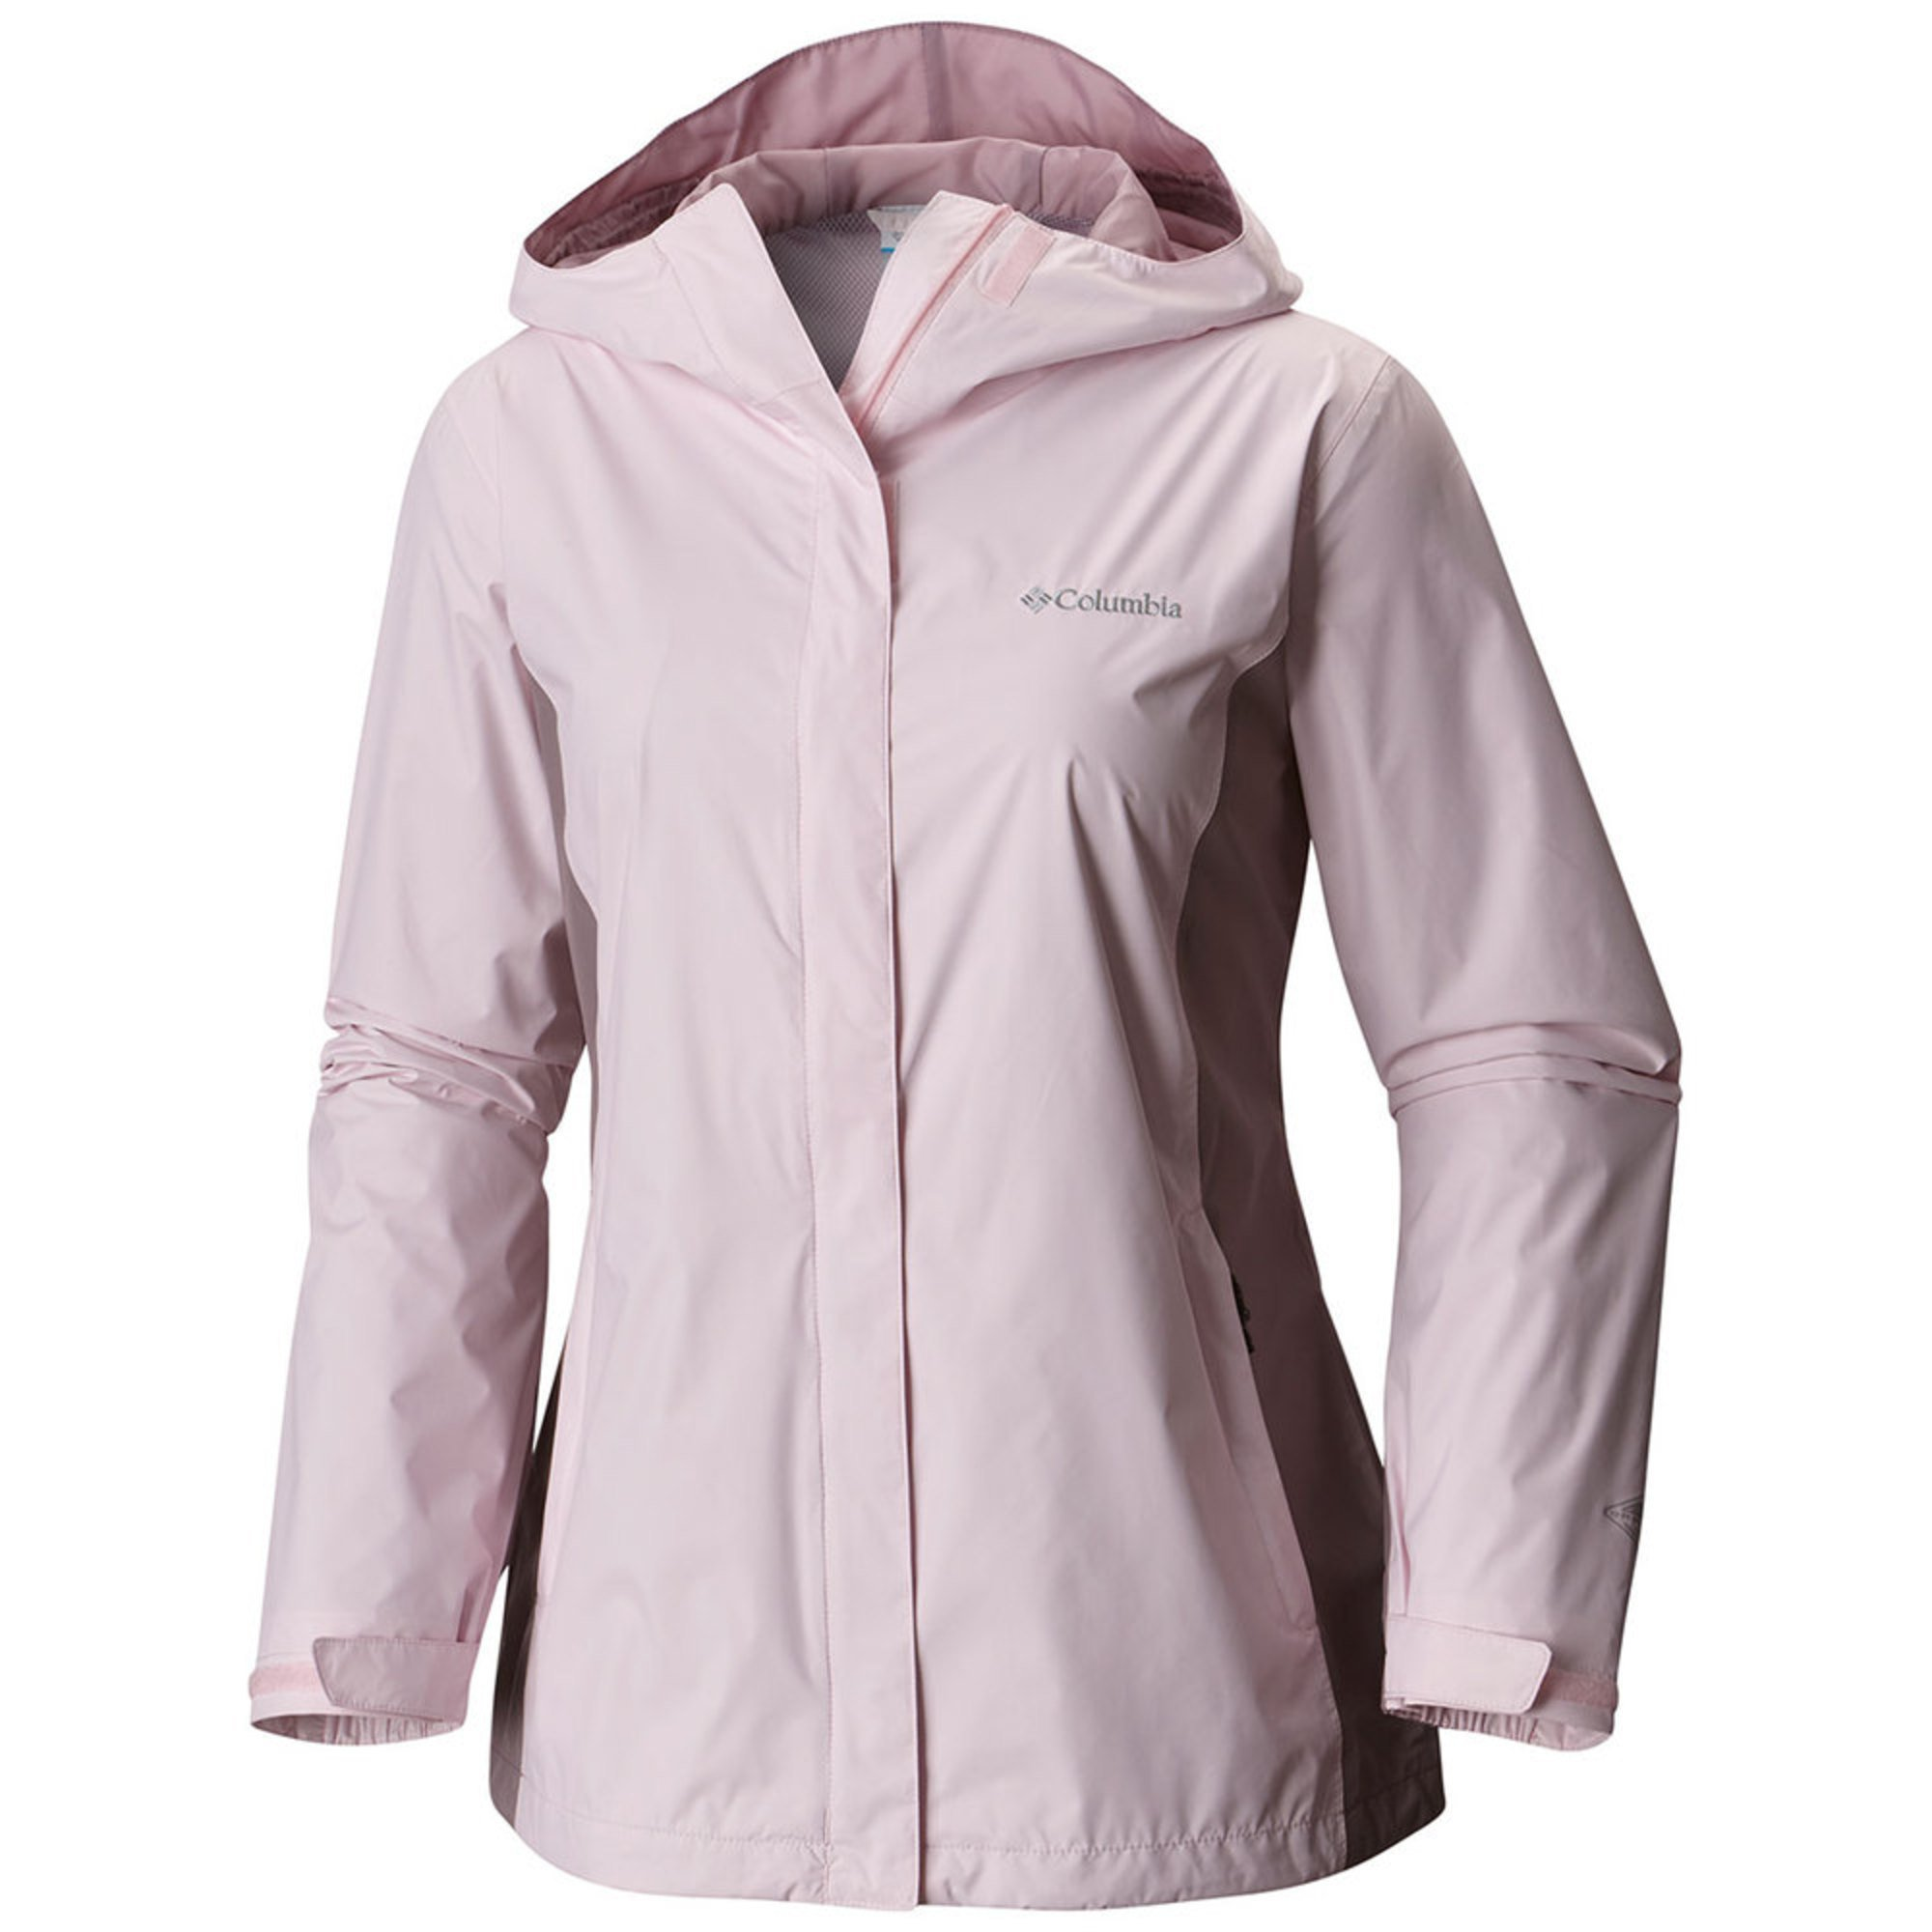 Columbia outdoor clothing coupons